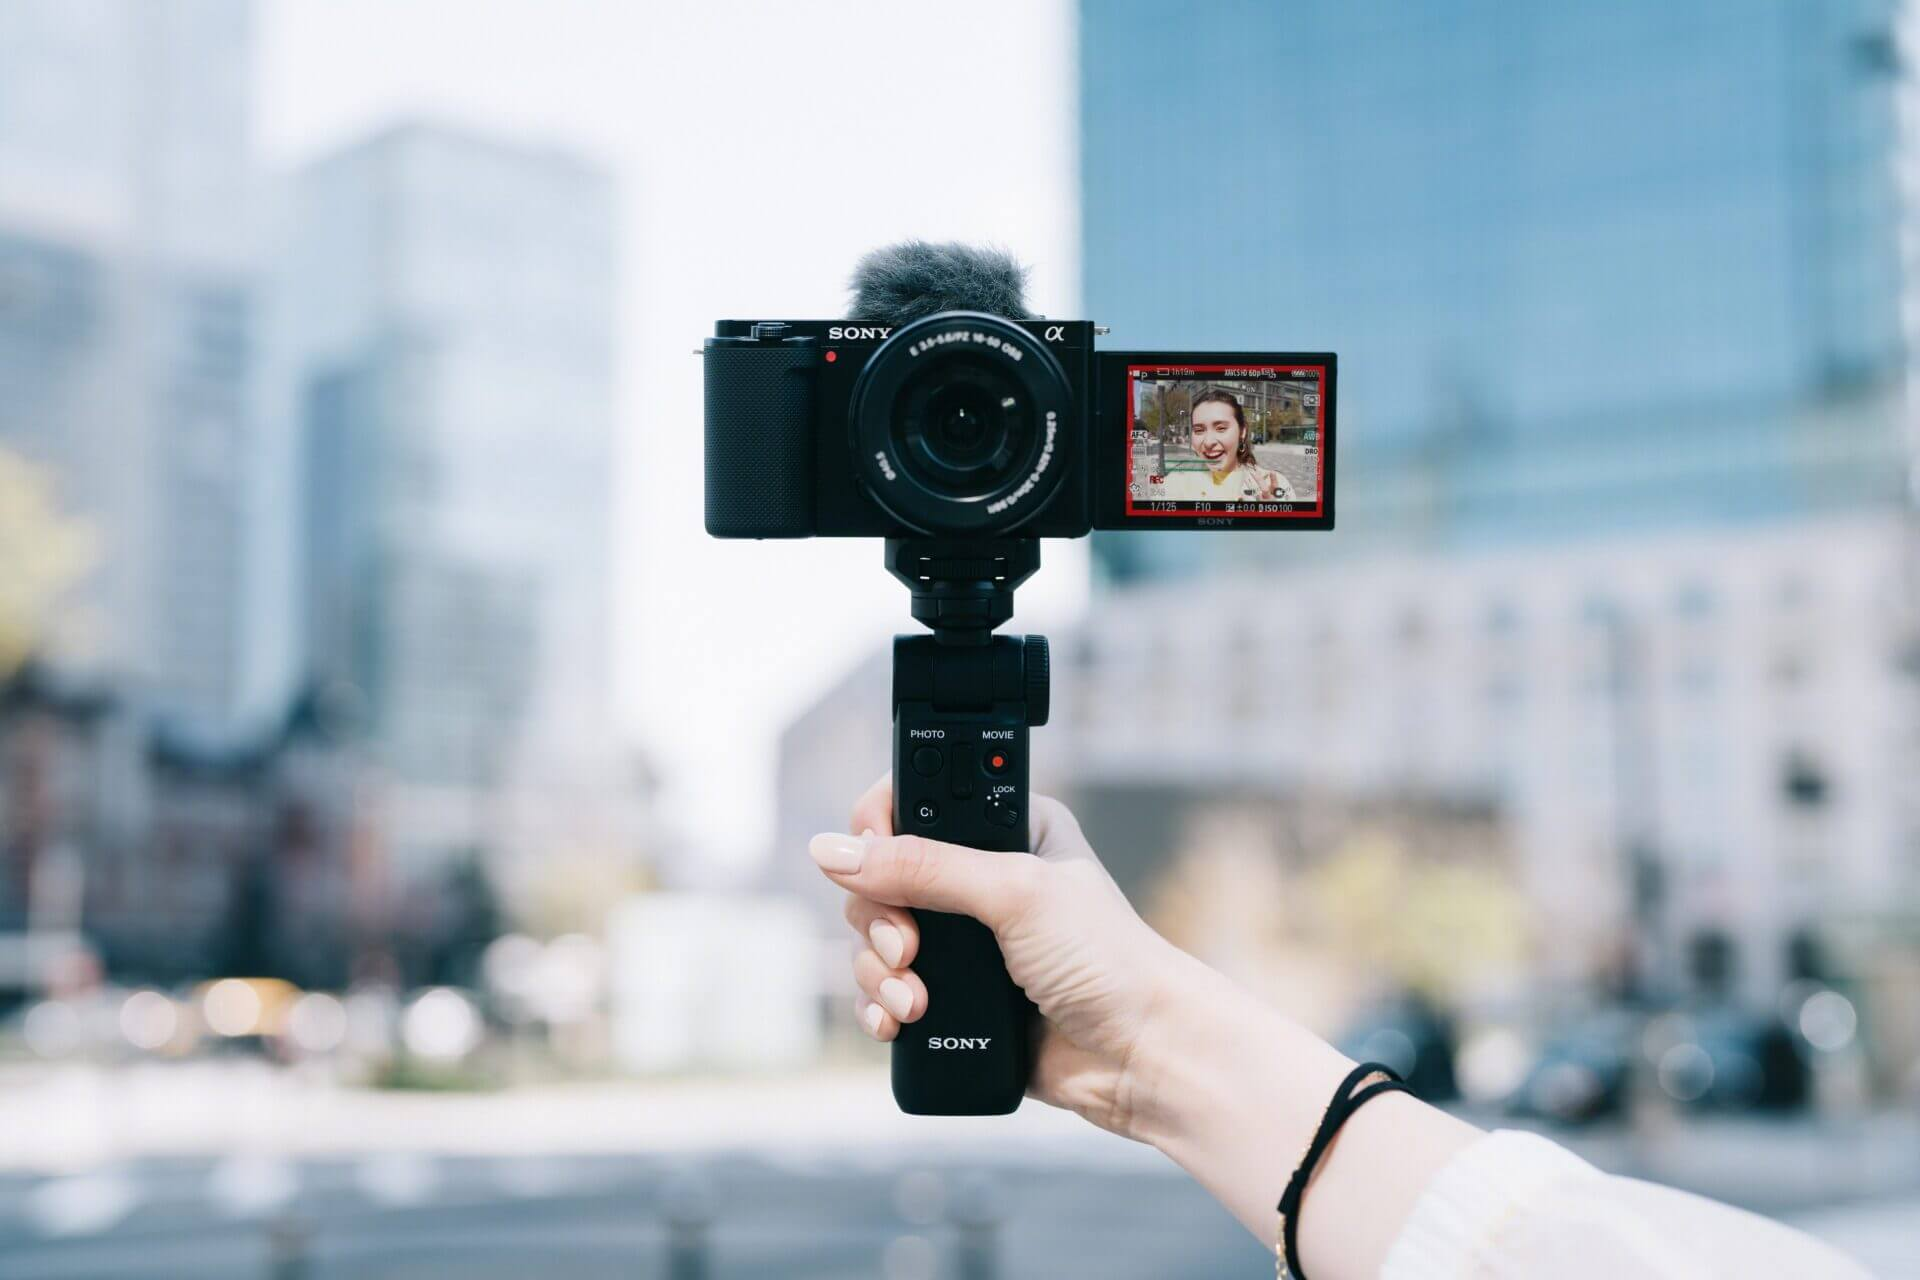 https://www.sony.co.th/th/electronics/interchangeable-lens-cameras/zv-e10?cpint=HOMEPAGE_TOPBANNER_SEAA12_3782